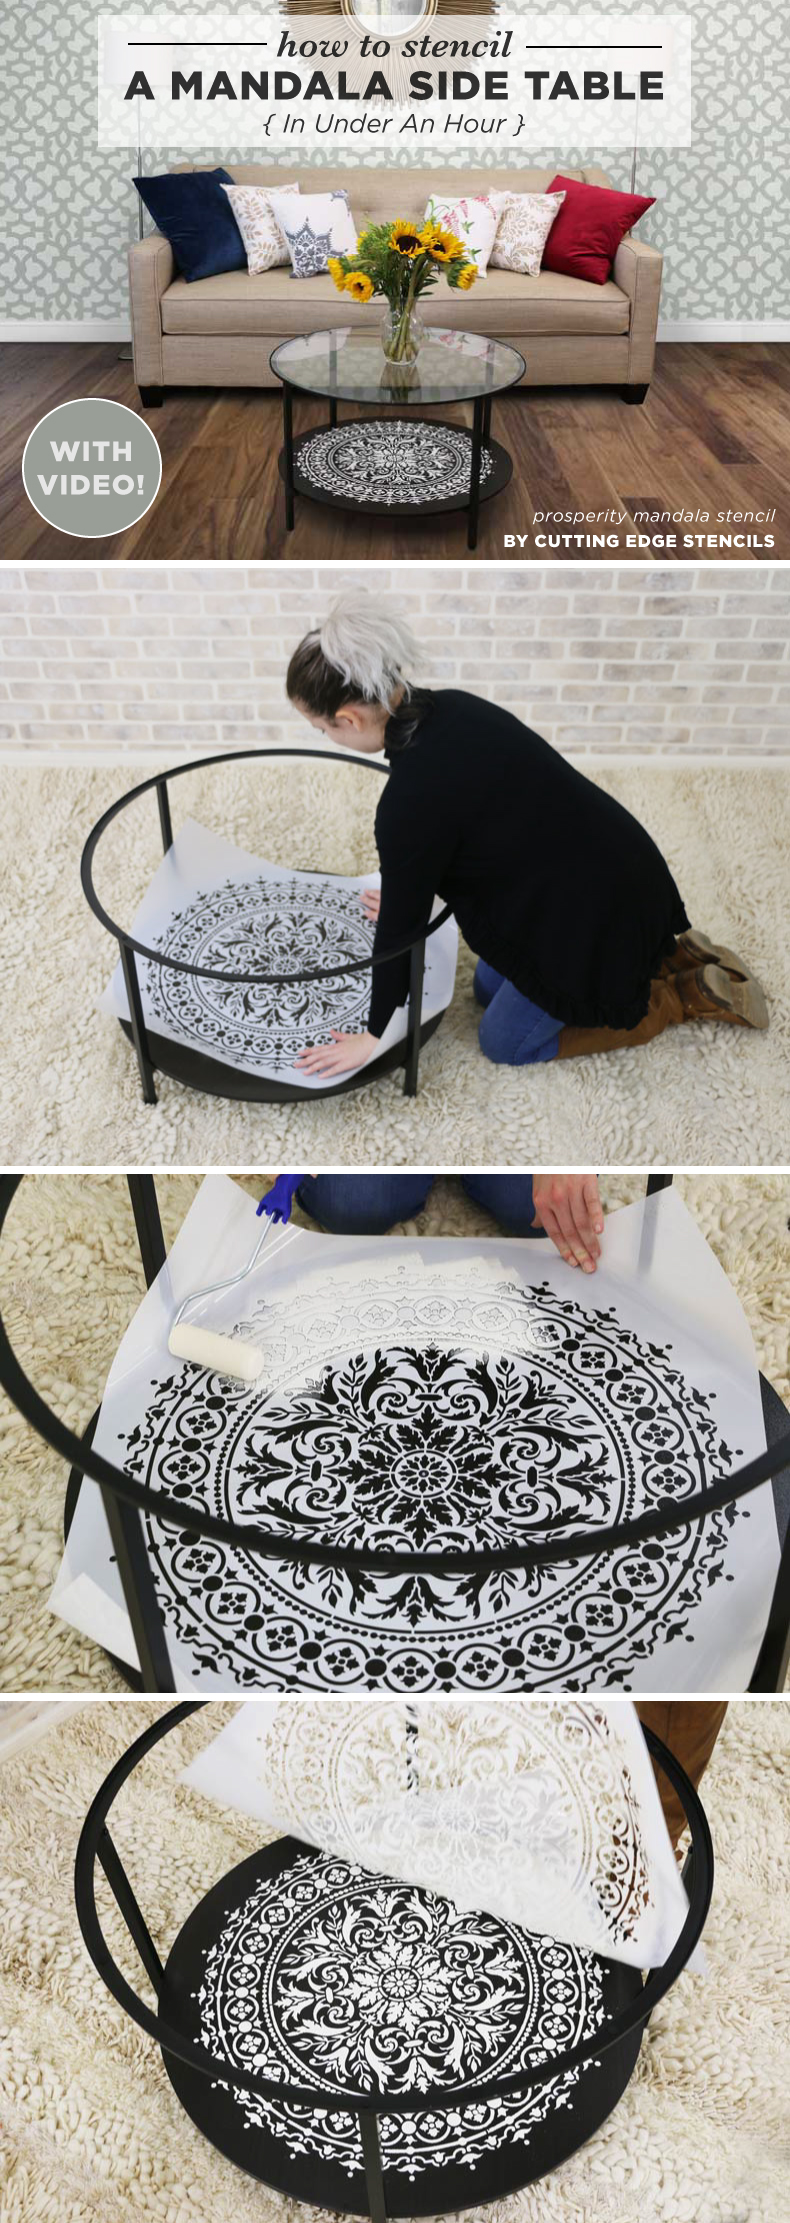 stenciled mandala table tutorial